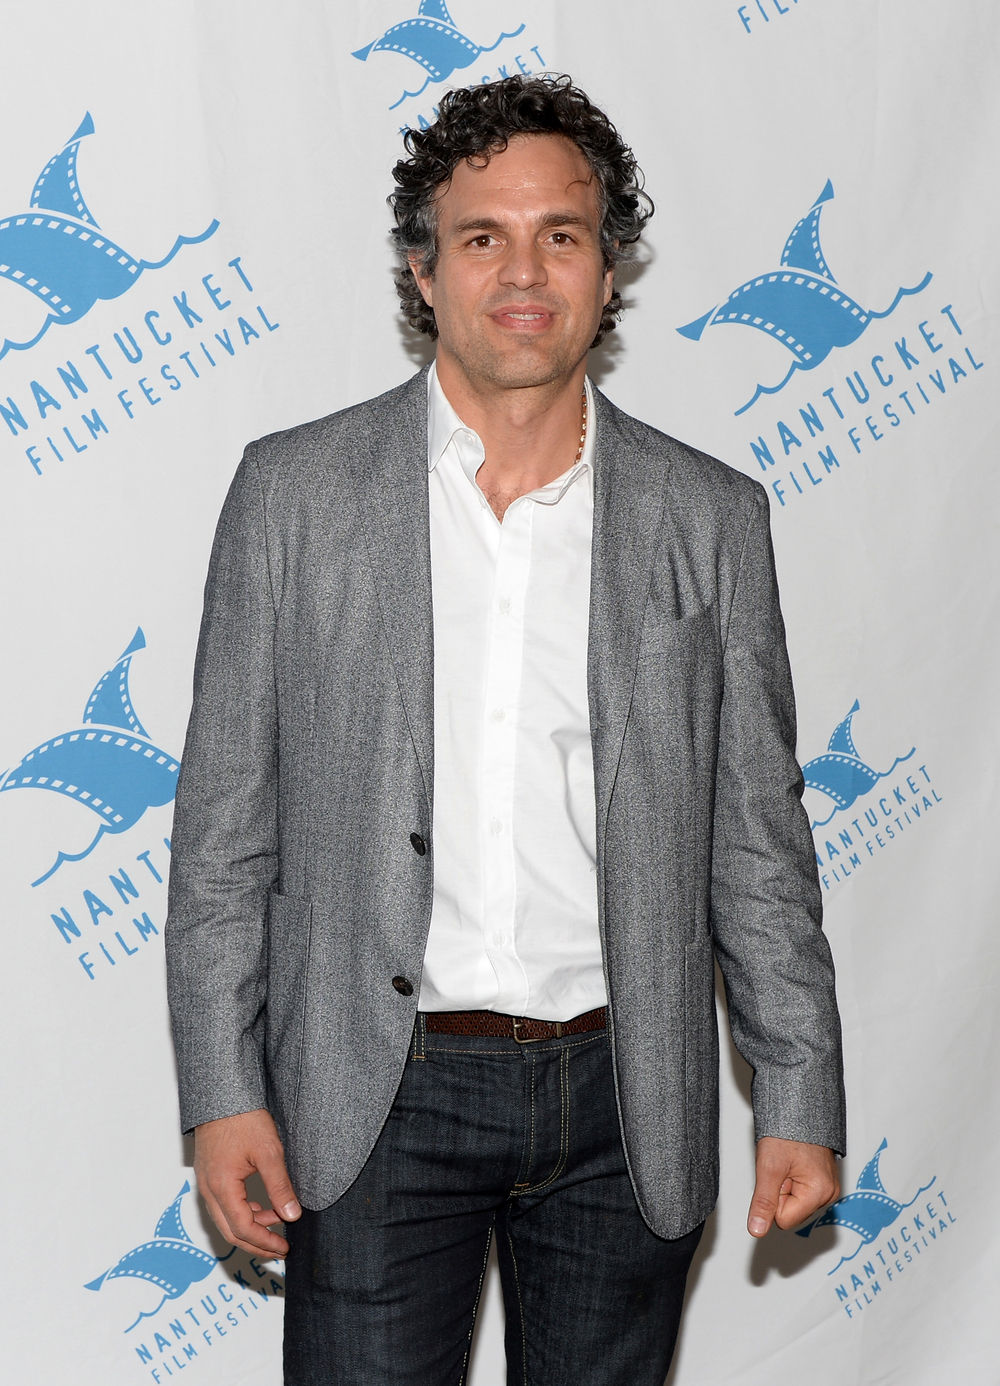 Mark Ruffalo at the 2014 Nantucket Film Festival.